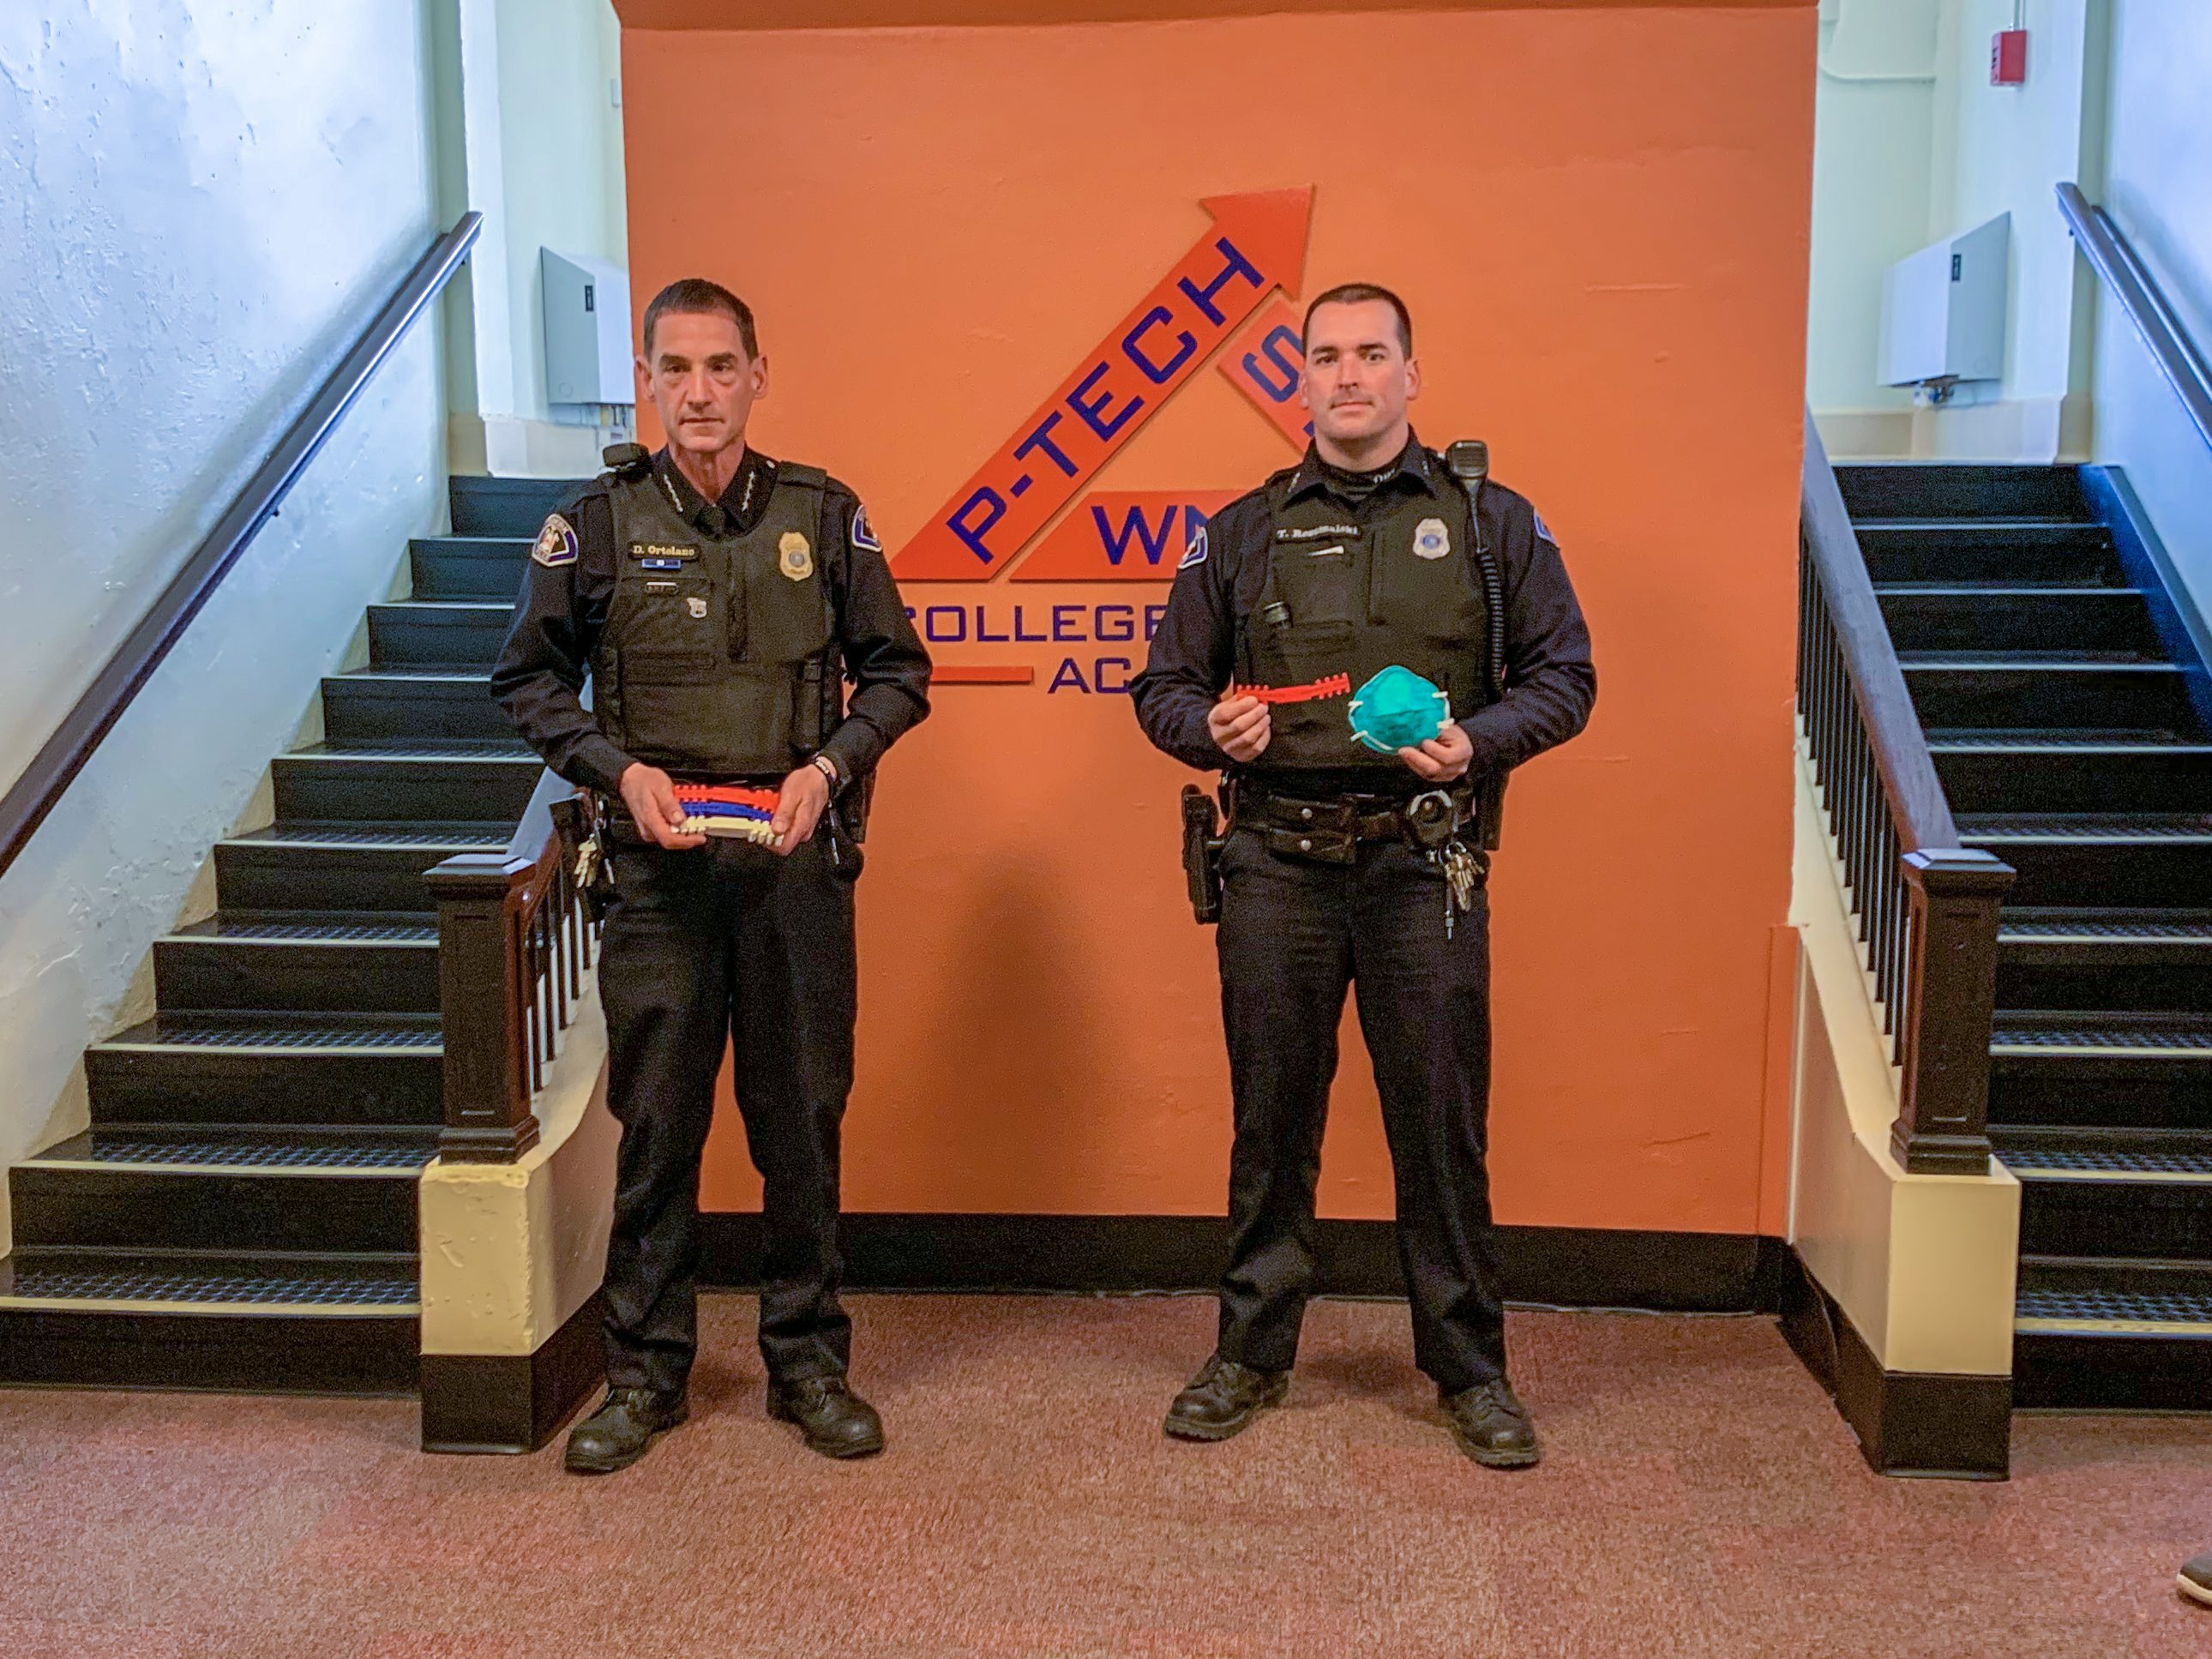 WNY P-TECH College and Career Academy donated more than 220 specially-designed ear guards to the Dunkirk Fire Department, Dunkirk Police Department, Brooks Memorial Hospital, Elliot Hospital in New Hampshire and Mount Sinai Hospital in New York City. Accepting the donation on behalf of the Dunkirk Police Department were Chief David Ortolano and officer Thomas Rozumalski. Pictured, from left, are Matt Edwards, P-TECH math teacher; Ortolano; Rozumalksi; and Nick Anson, P-TECH CADD teacher.